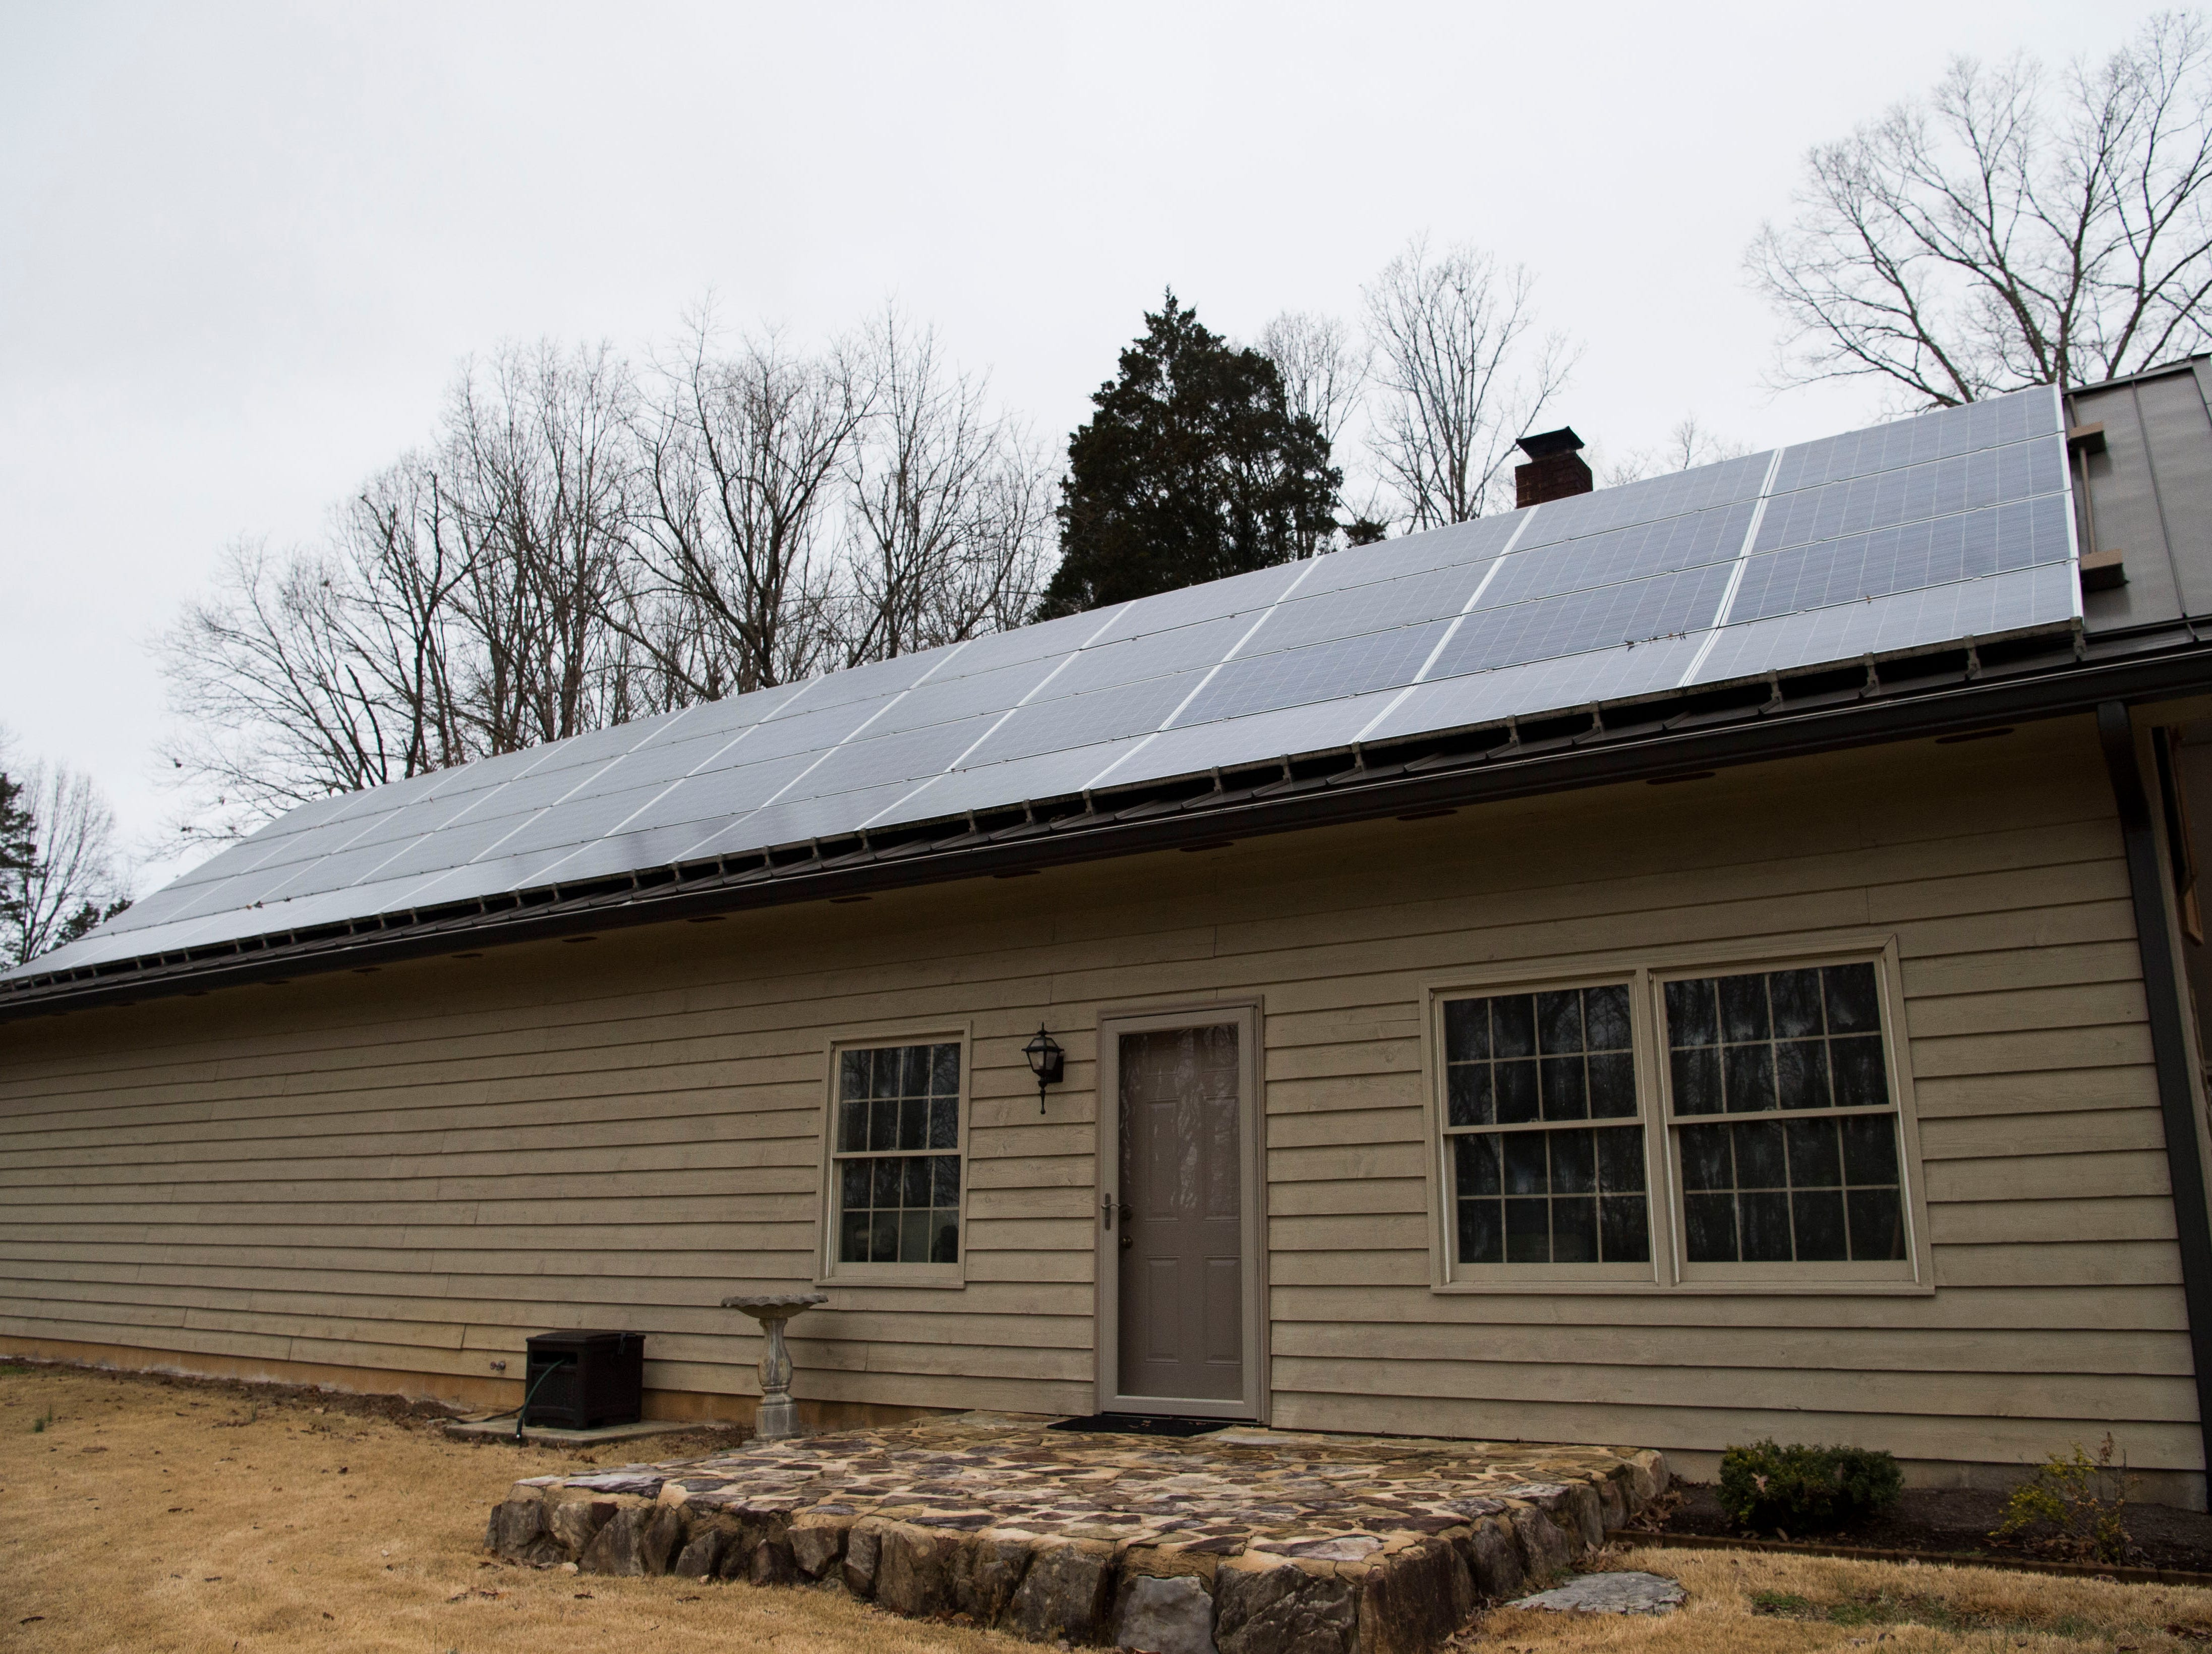 Mark Bishop has solar panels at his home which help charge his electric vehicles, in Clinton, Saturday, Feb. 16, 2019.